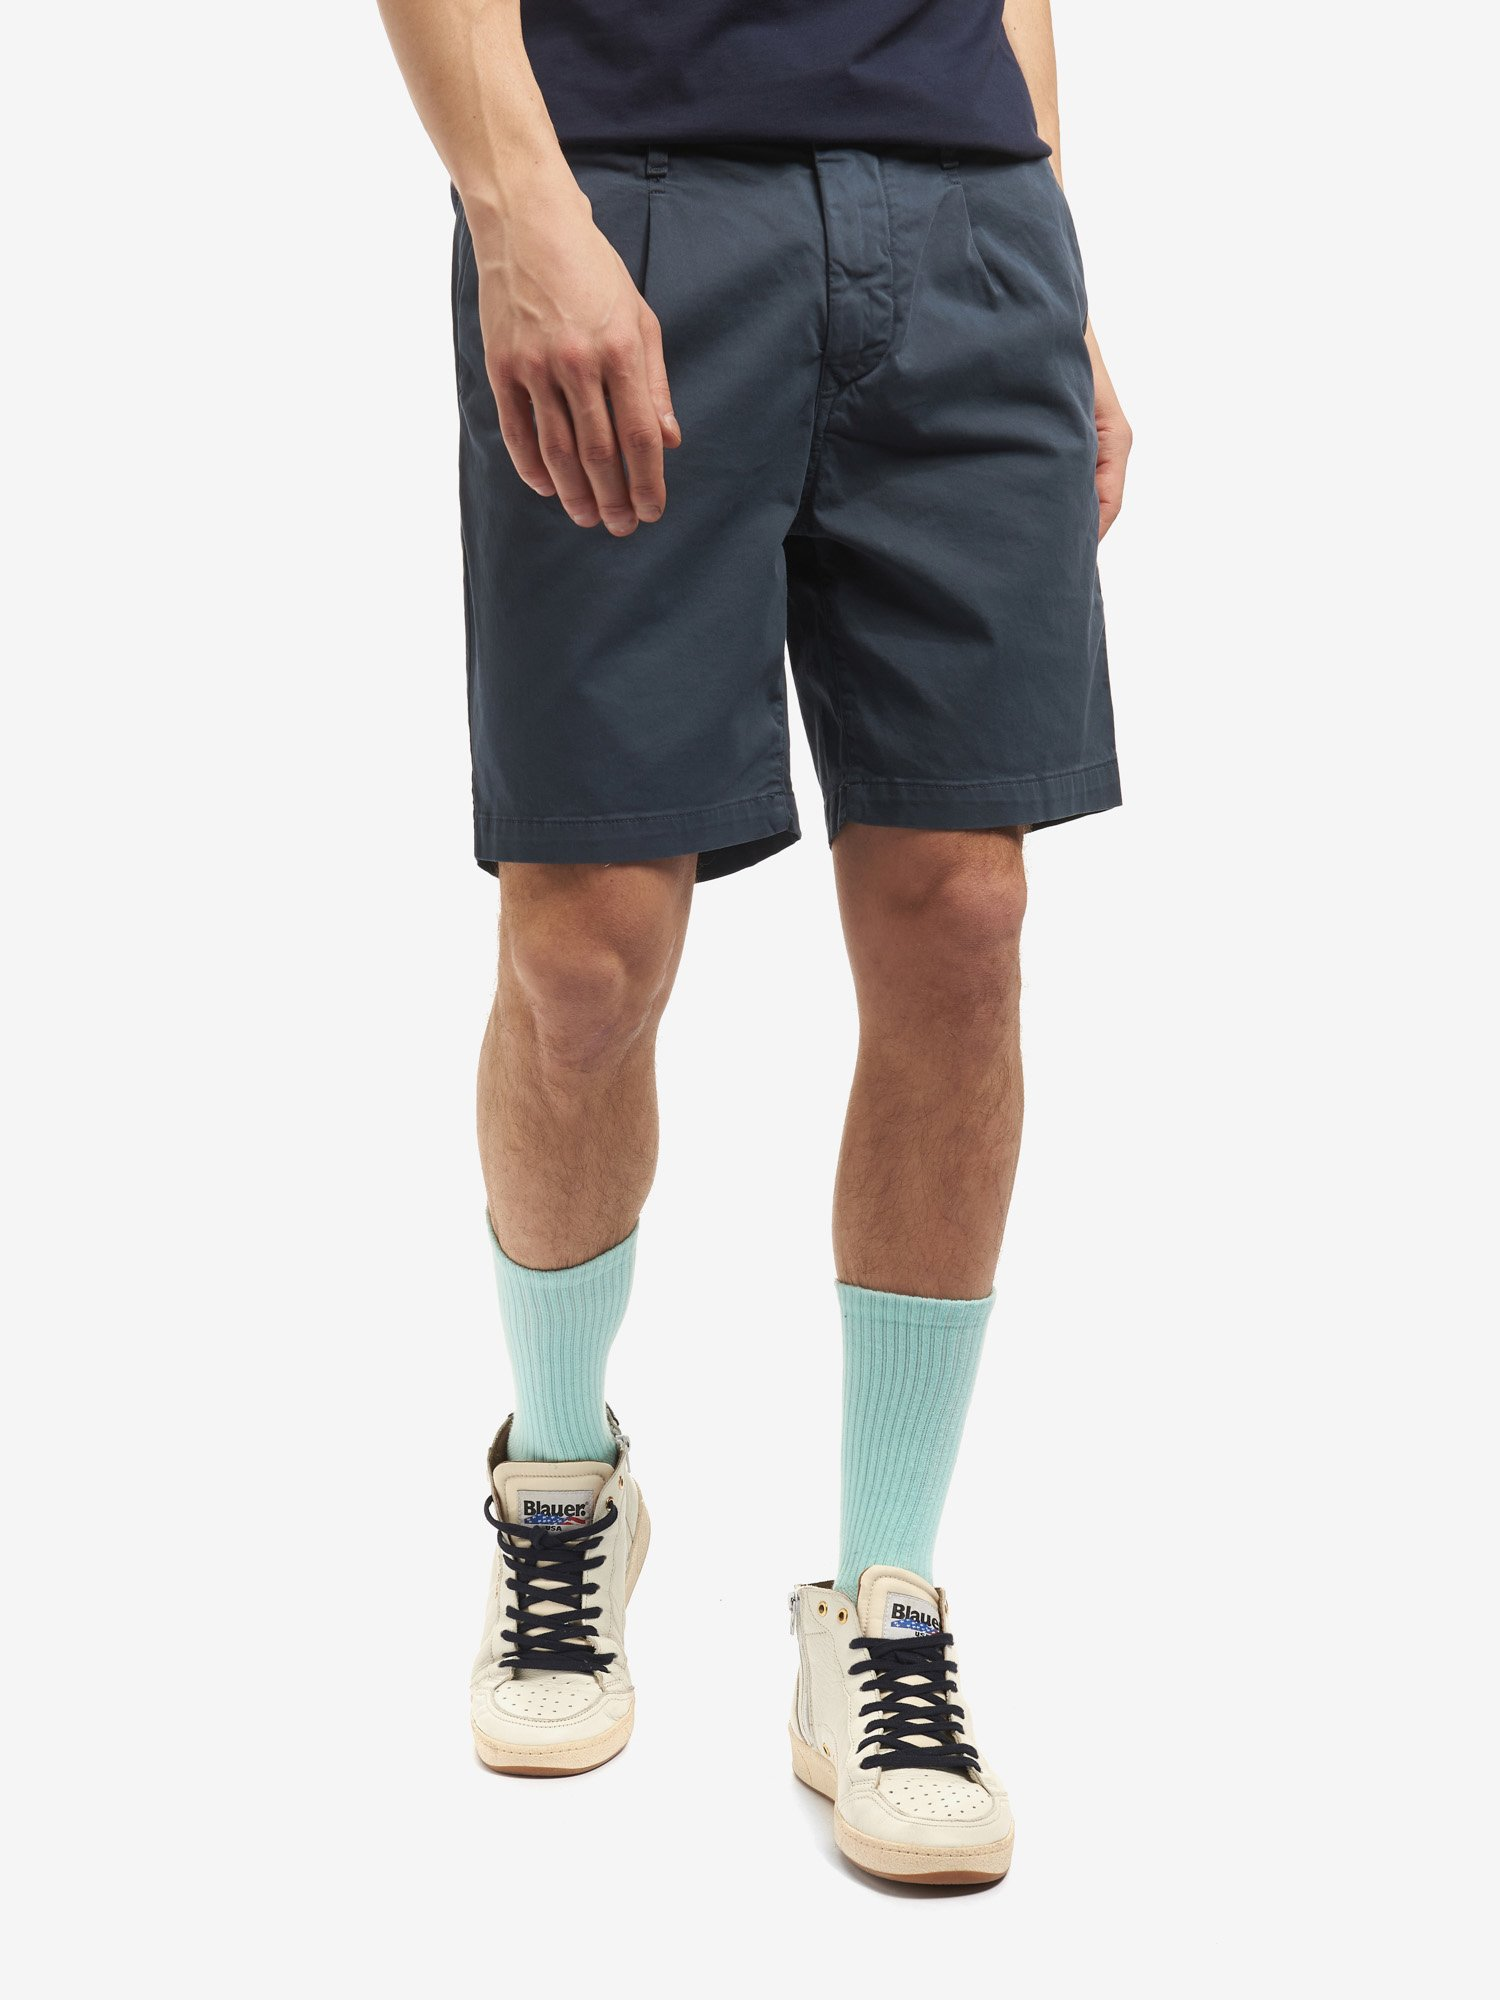 BERMUDA SHORTS WITH GATHERED WAIST - Blauer